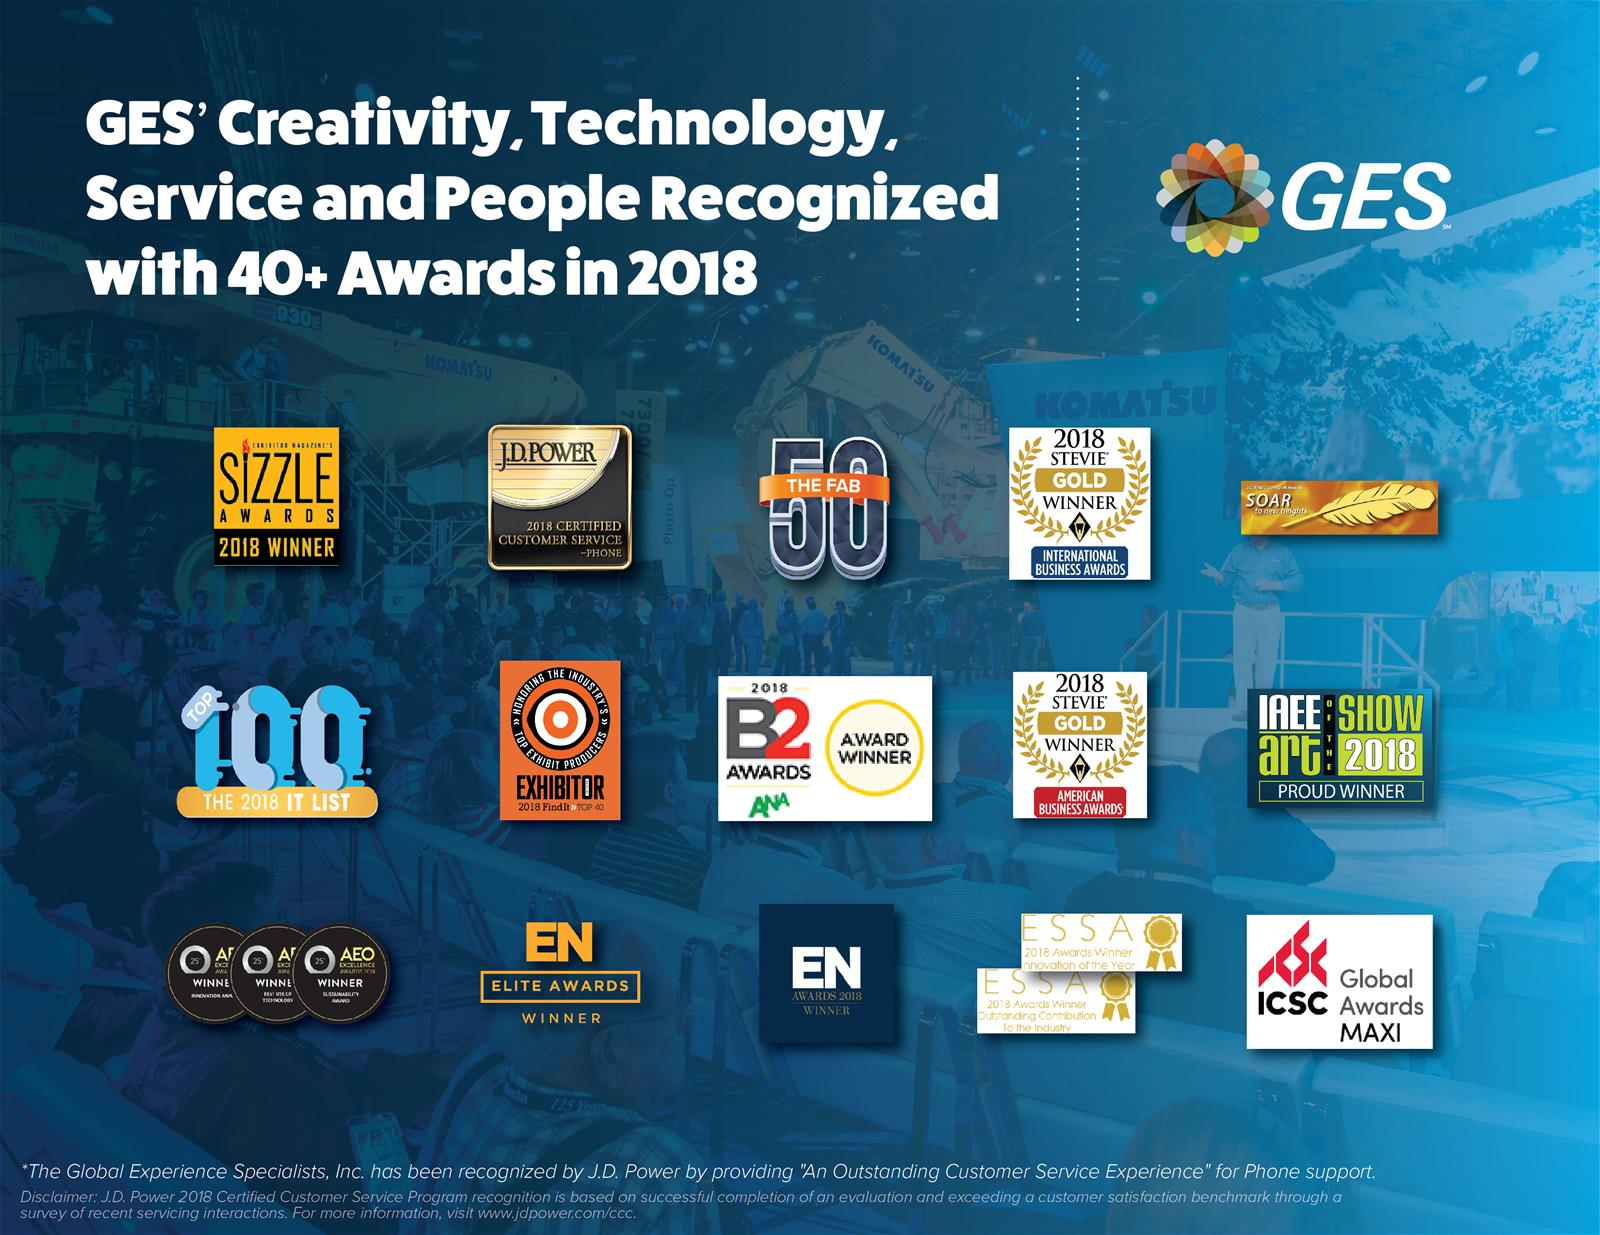 GES' Creativity, Technology, Service and People Recognized with 40 plus Awards in 2018